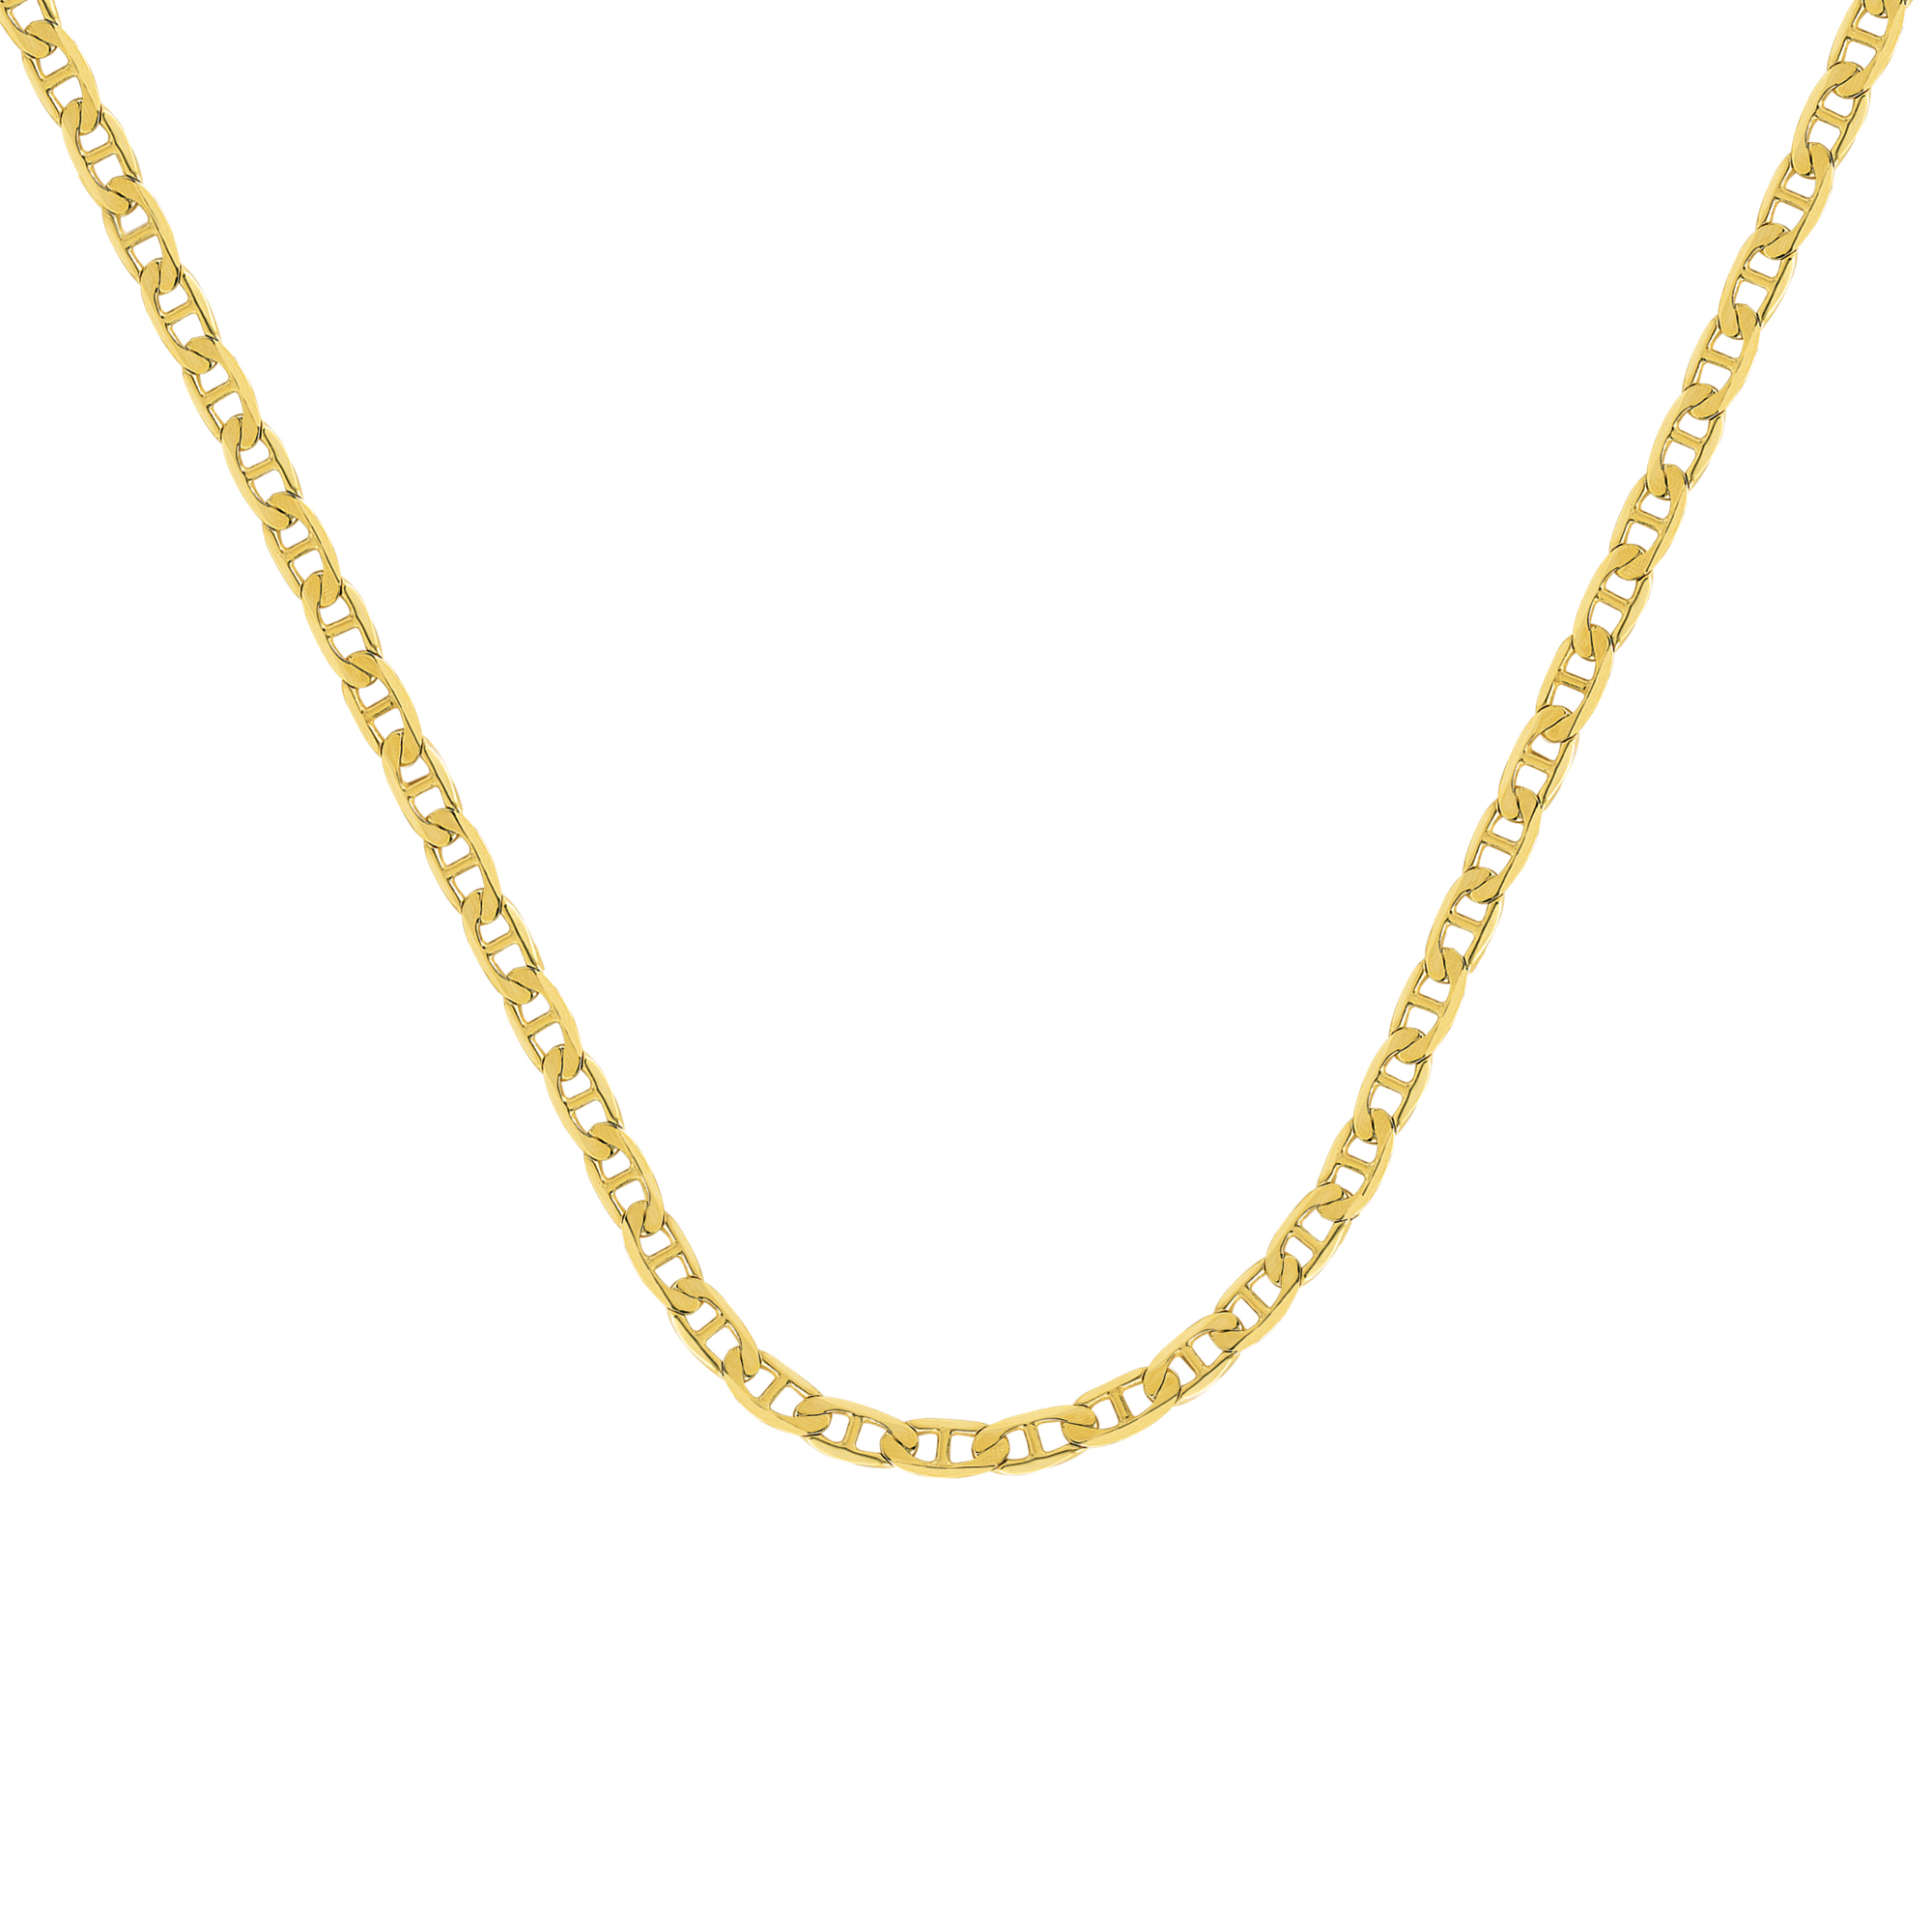 Mariner Chain , 14Kt Gold  Mariner Chain With Lobster Lock / 30